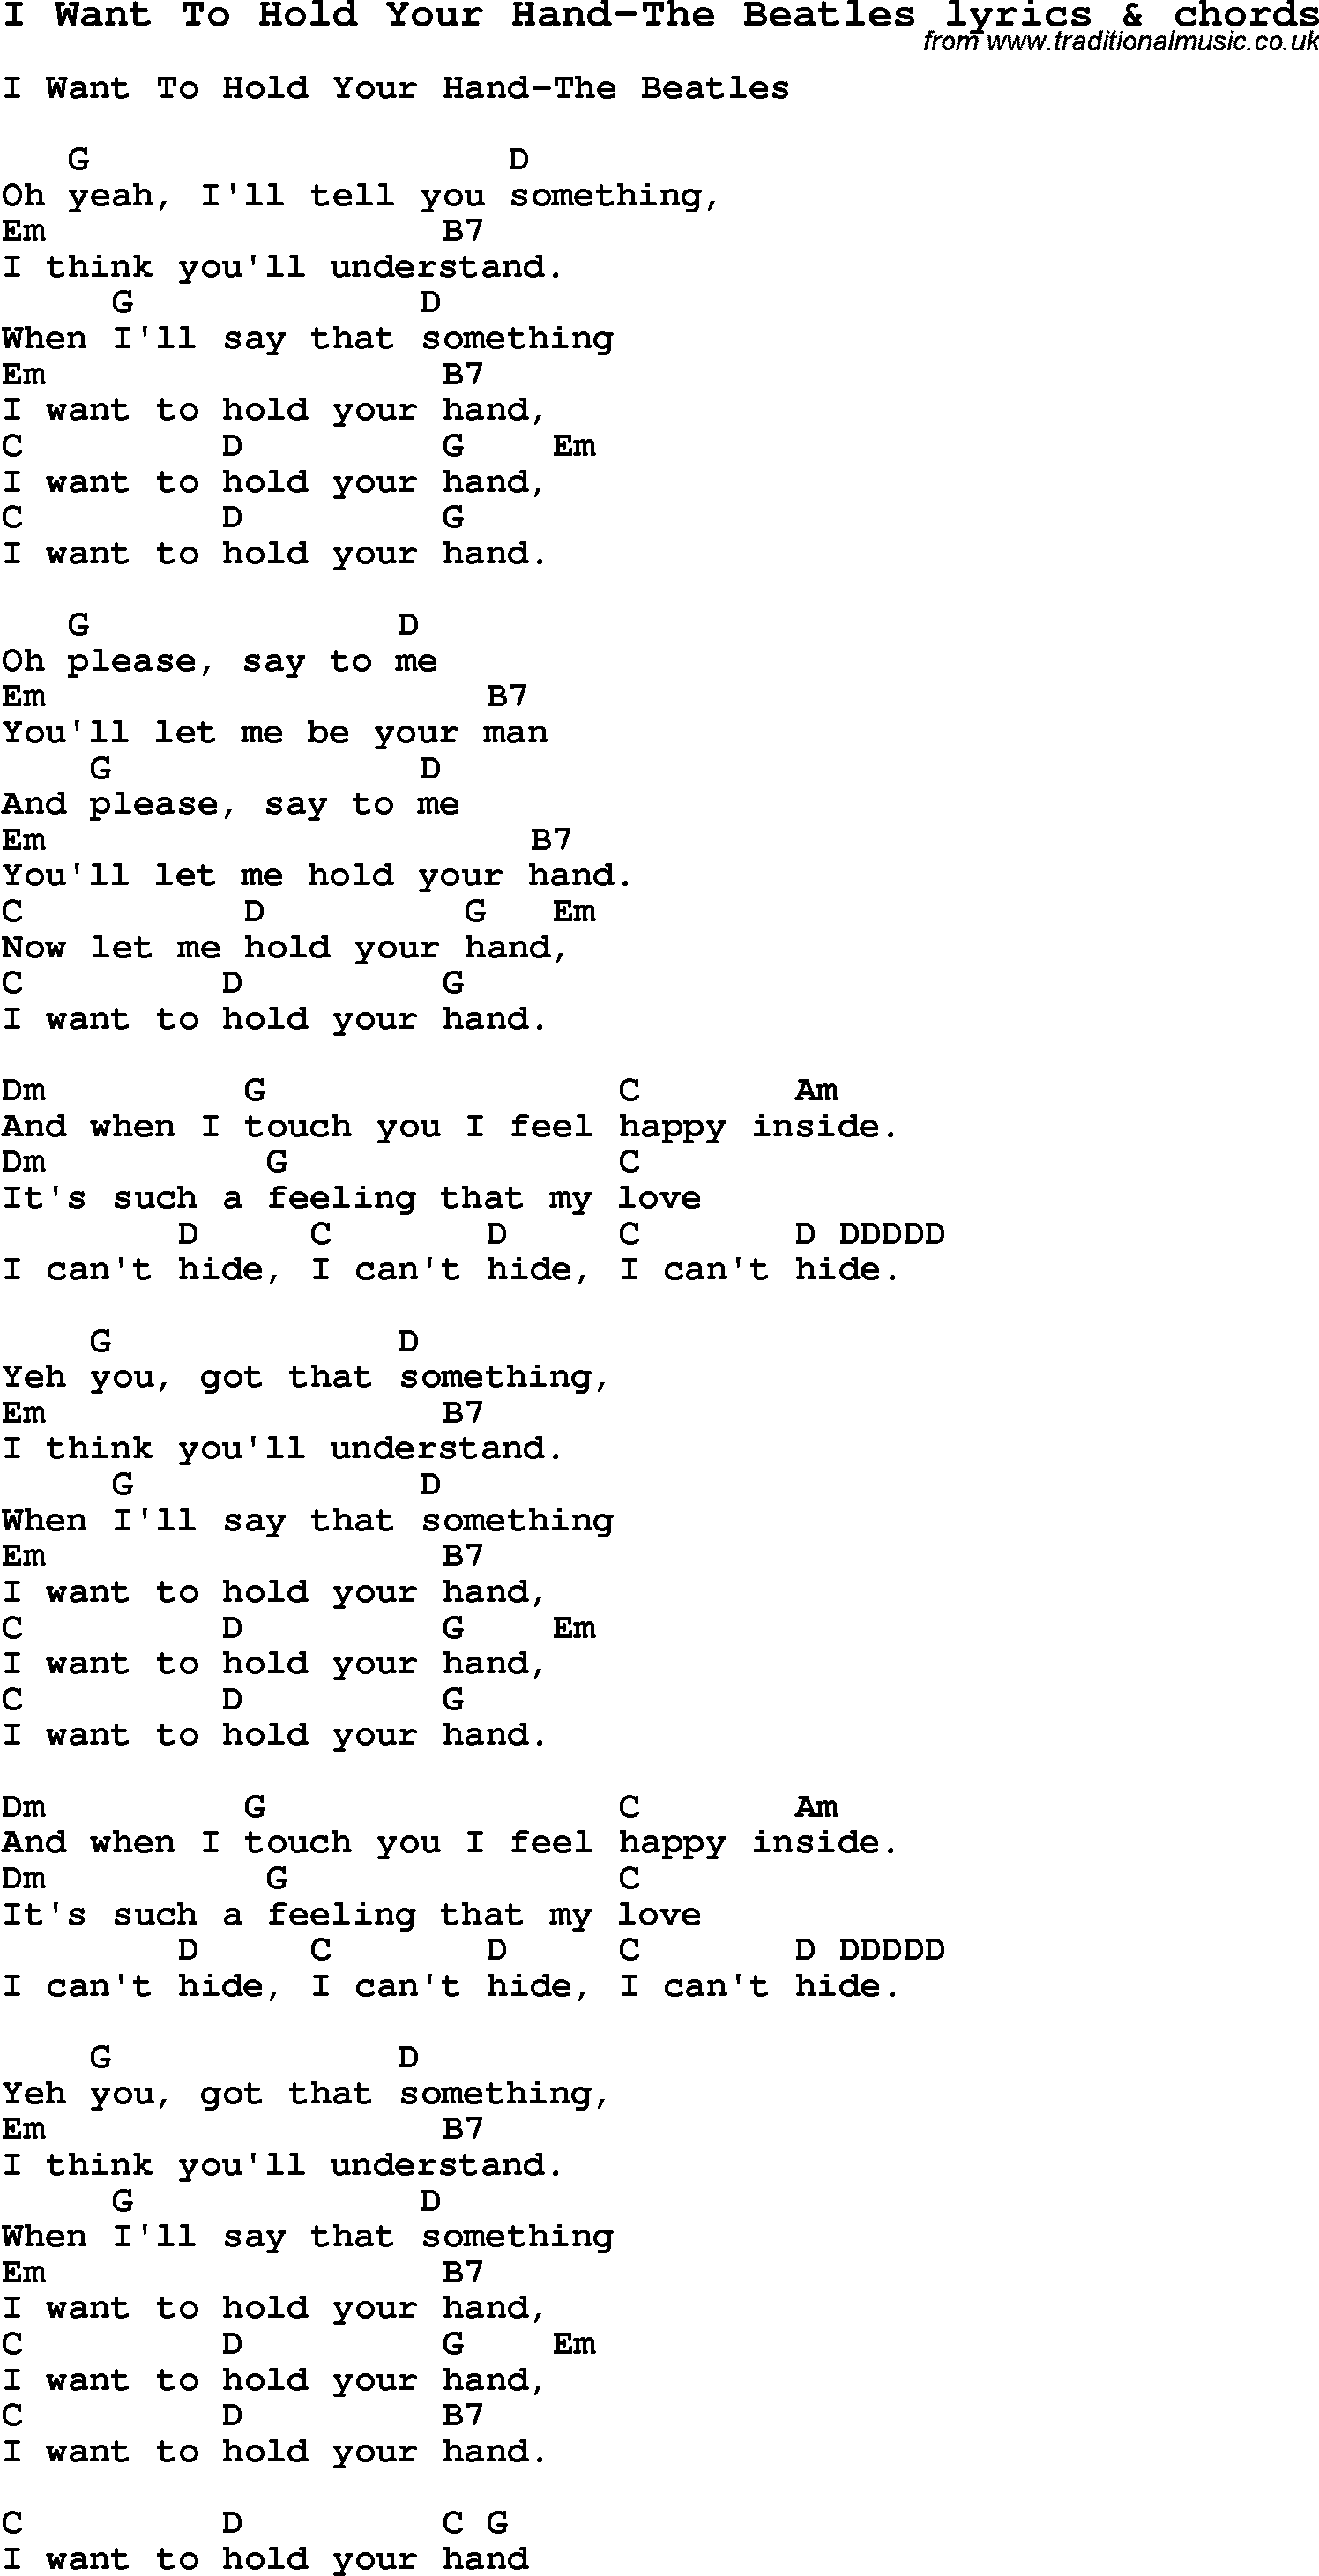 Love song lyrics for i want to hold your hand the beatles with love song lyrics for i want to hold your hand the beatles with chords for ukulele guitar banjo etc hexwebz Images